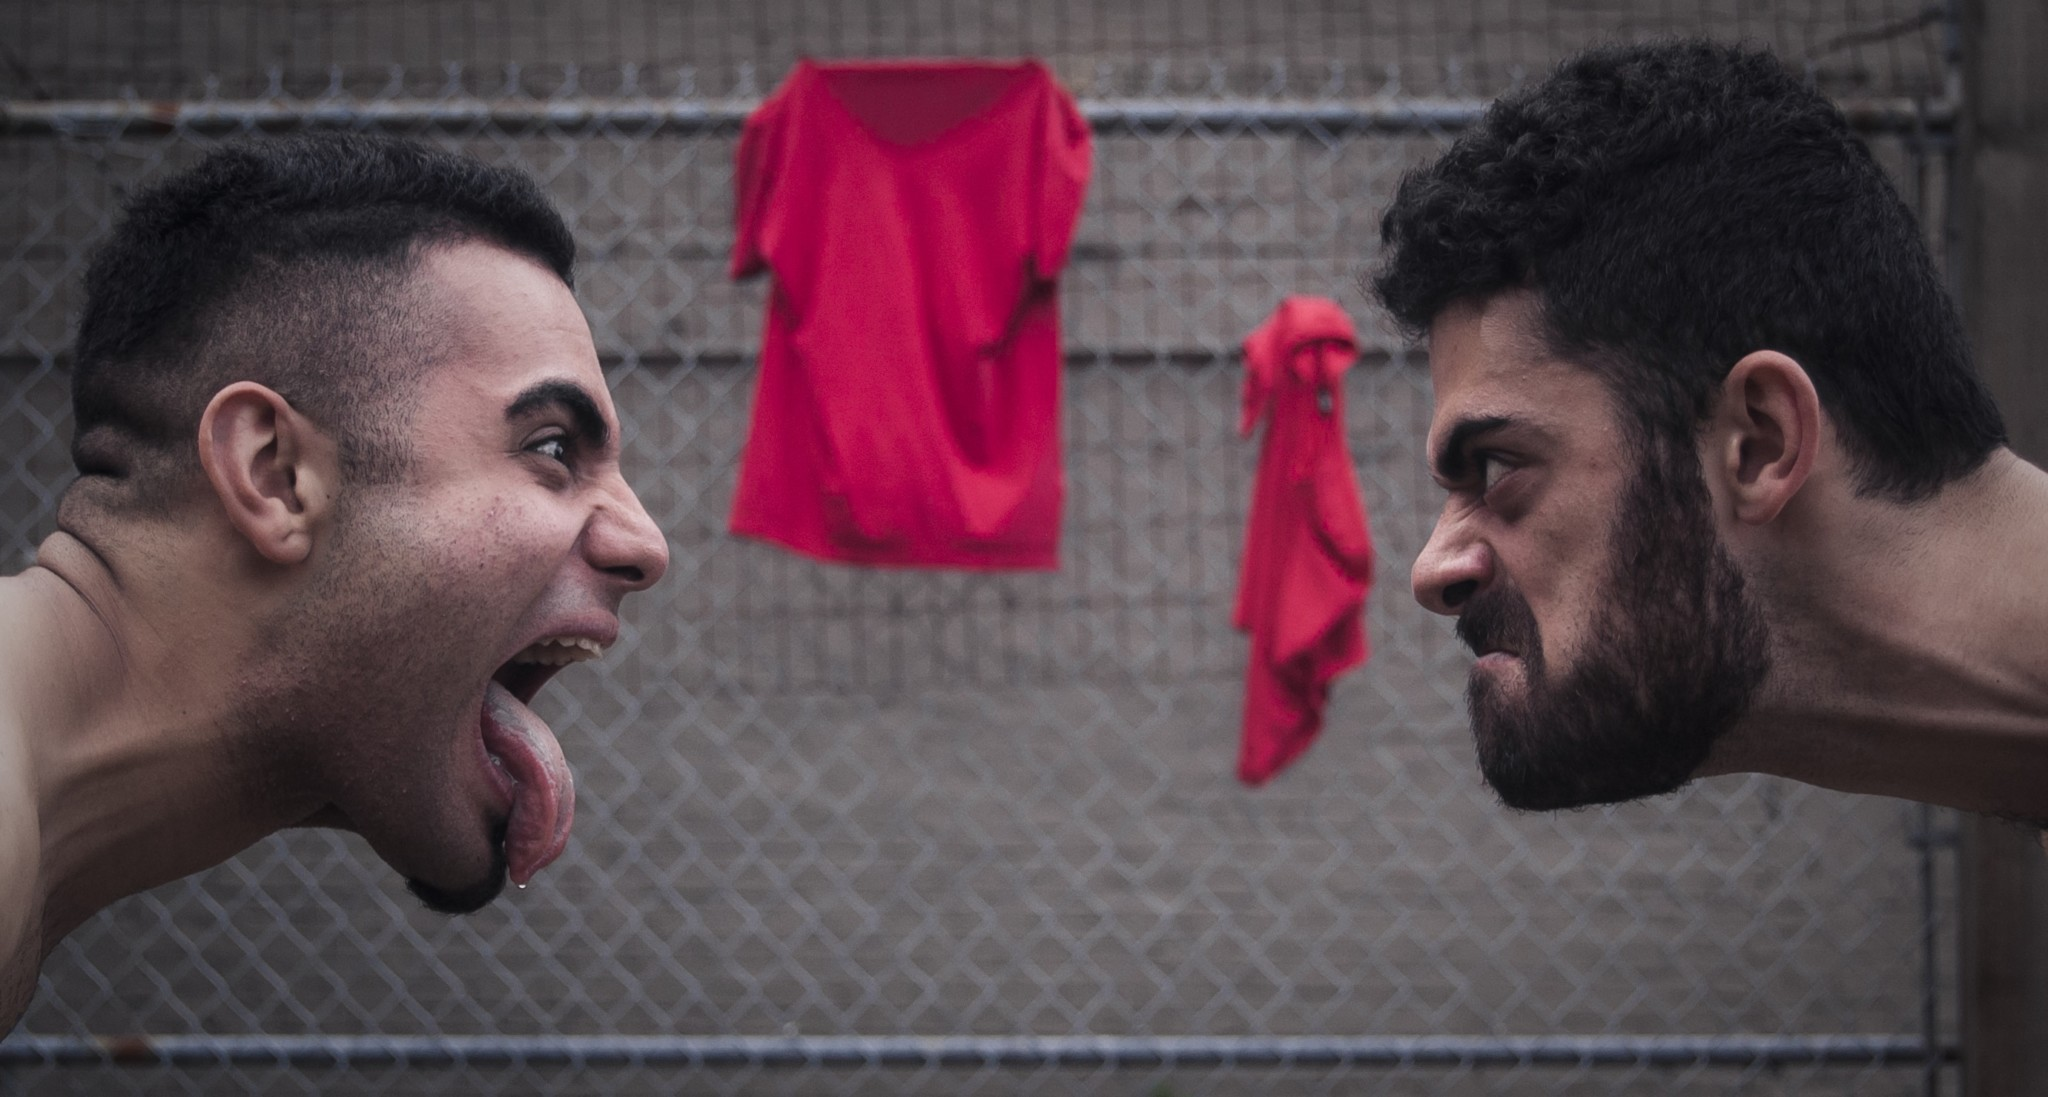 The Firehall Arts Centre Presents… CAIN AND ABEL The Biting School | Arash & Aryo Khakpour